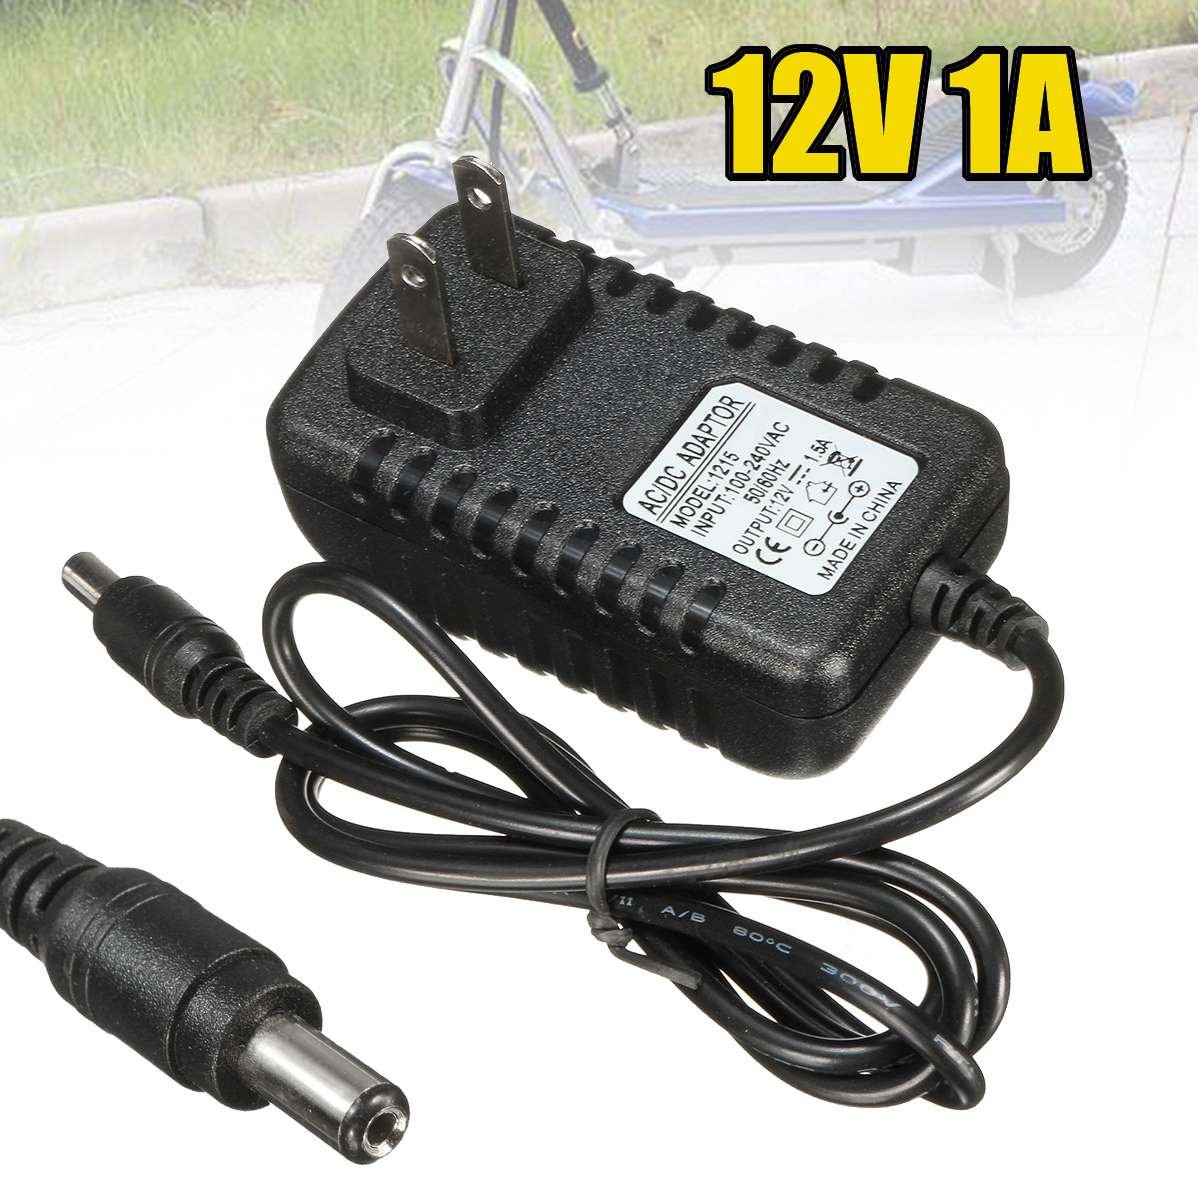 Cables, Adapters & Sockets Car Electronics 1pcs Black Ac/dc Adapter 12v 1a Battery Charger For Kids Atv Quad Ride On Cars Motorcycles Finely Processed